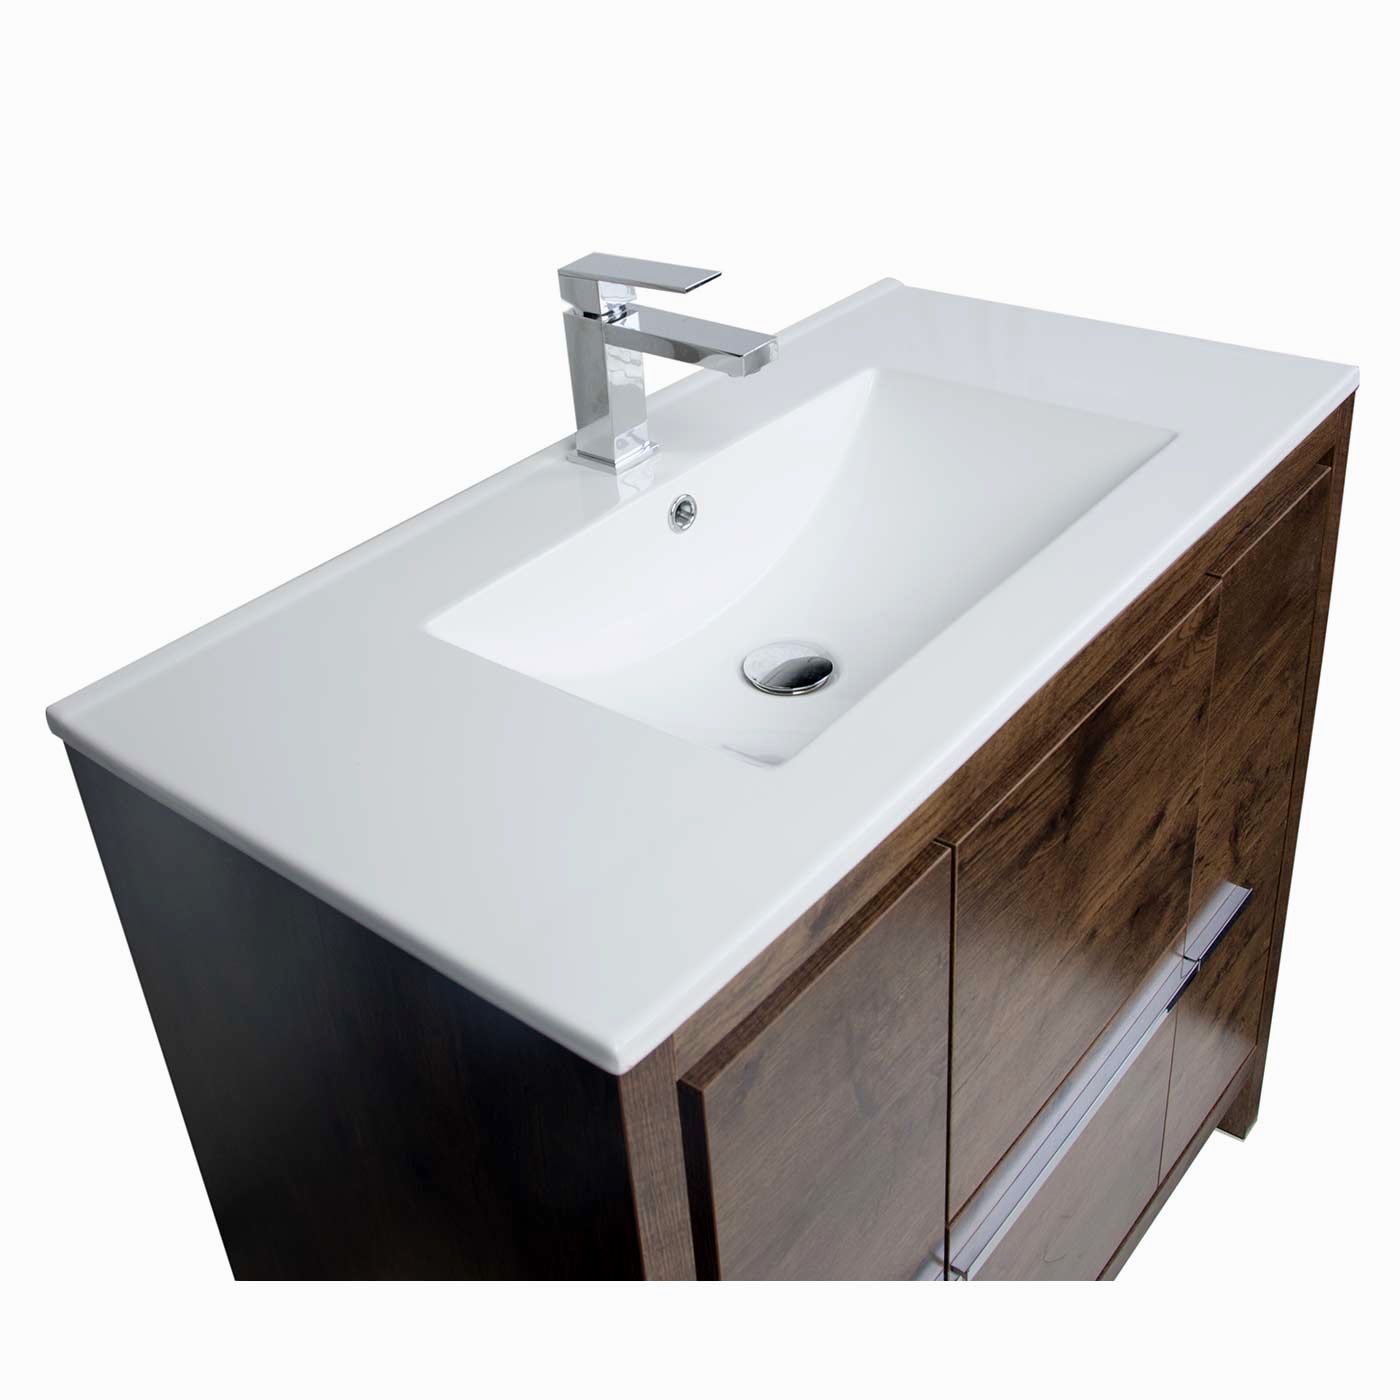 best 36 inch bathroom vanity concept-Superb 36 Inch Bathroom Vanity Inspiration